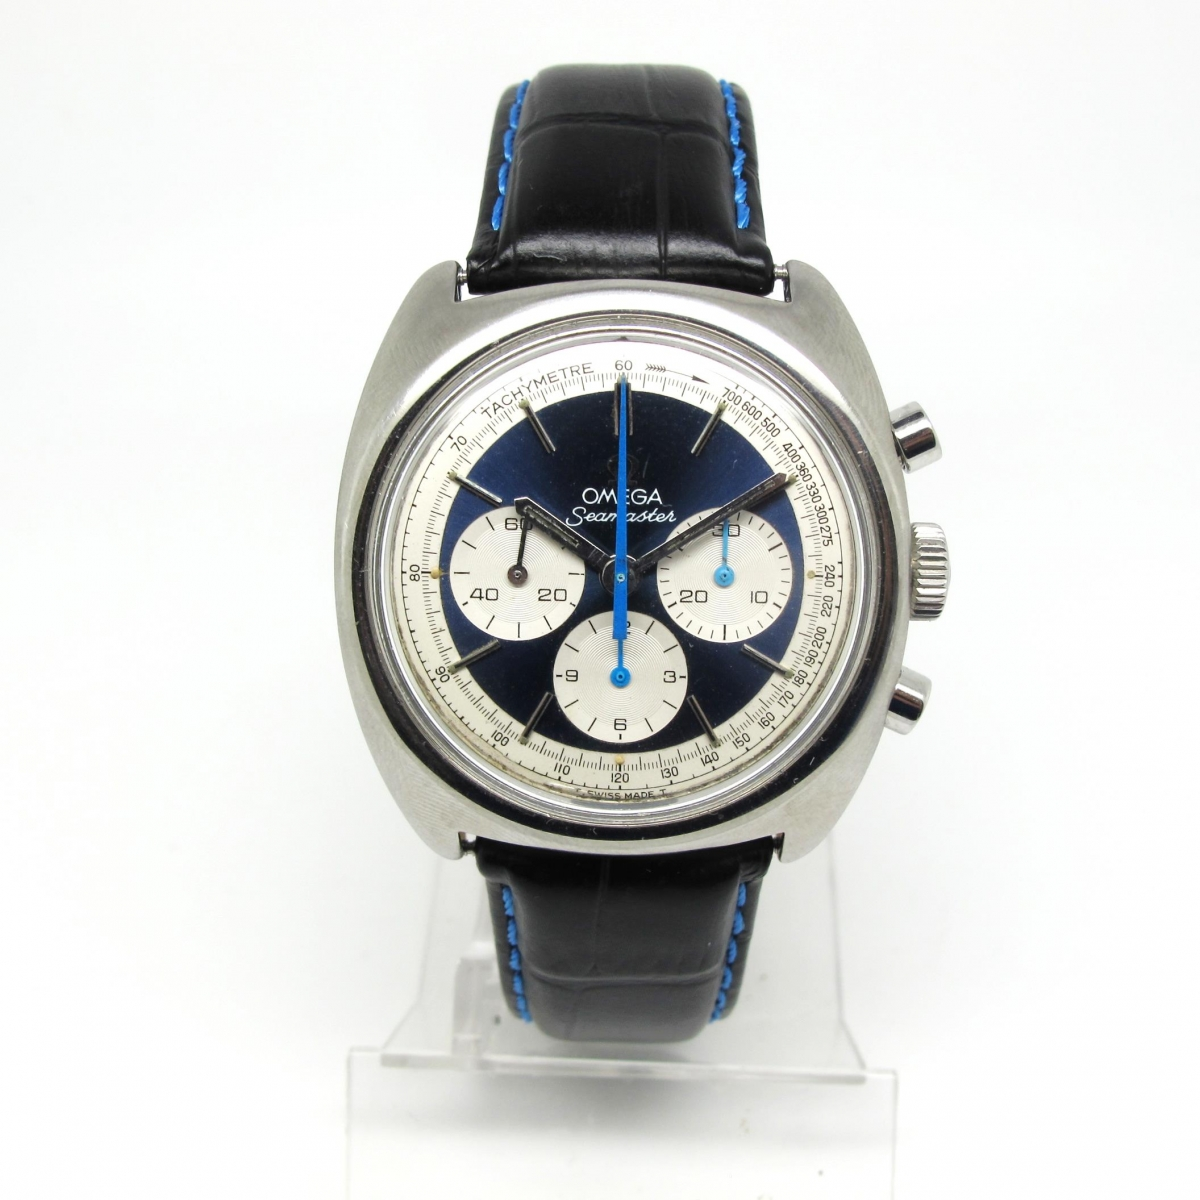 Omega Seamaster Chronograph Rare Dial Vintage Watch Specialists